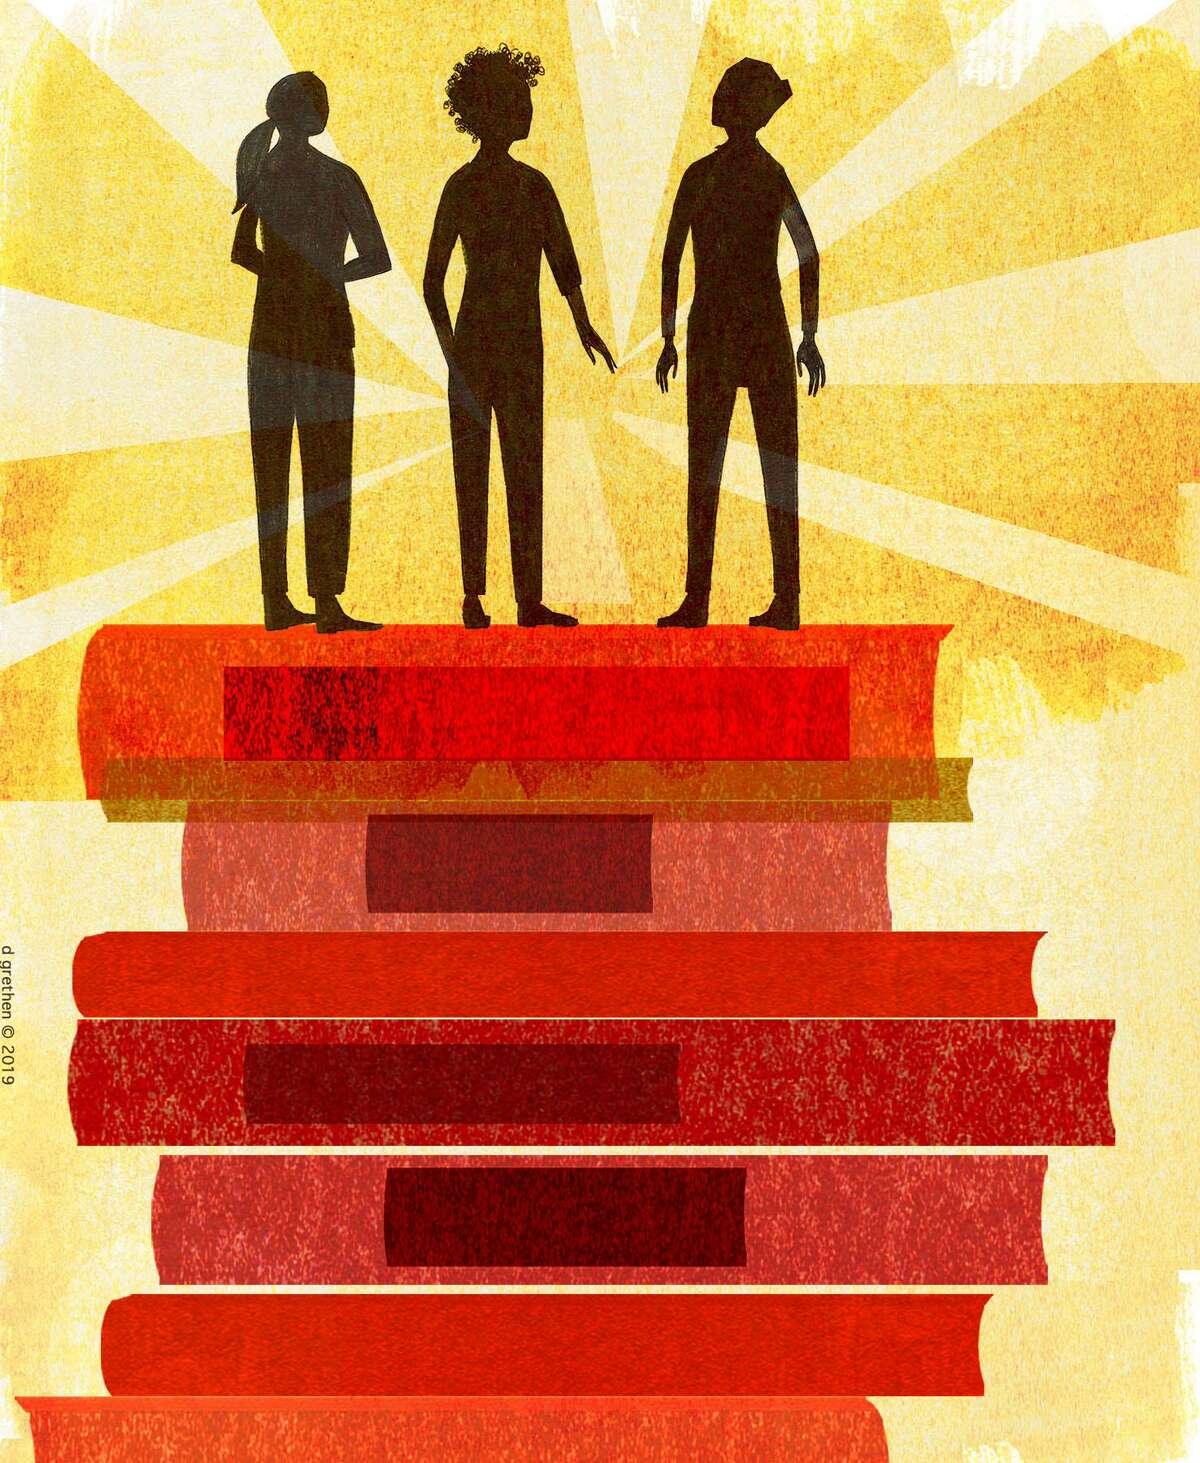 This artwork by Donna Grethen refers to the benefits of equal education for students from all types of backgrounds, and the need to encourage them to pursue higher education.